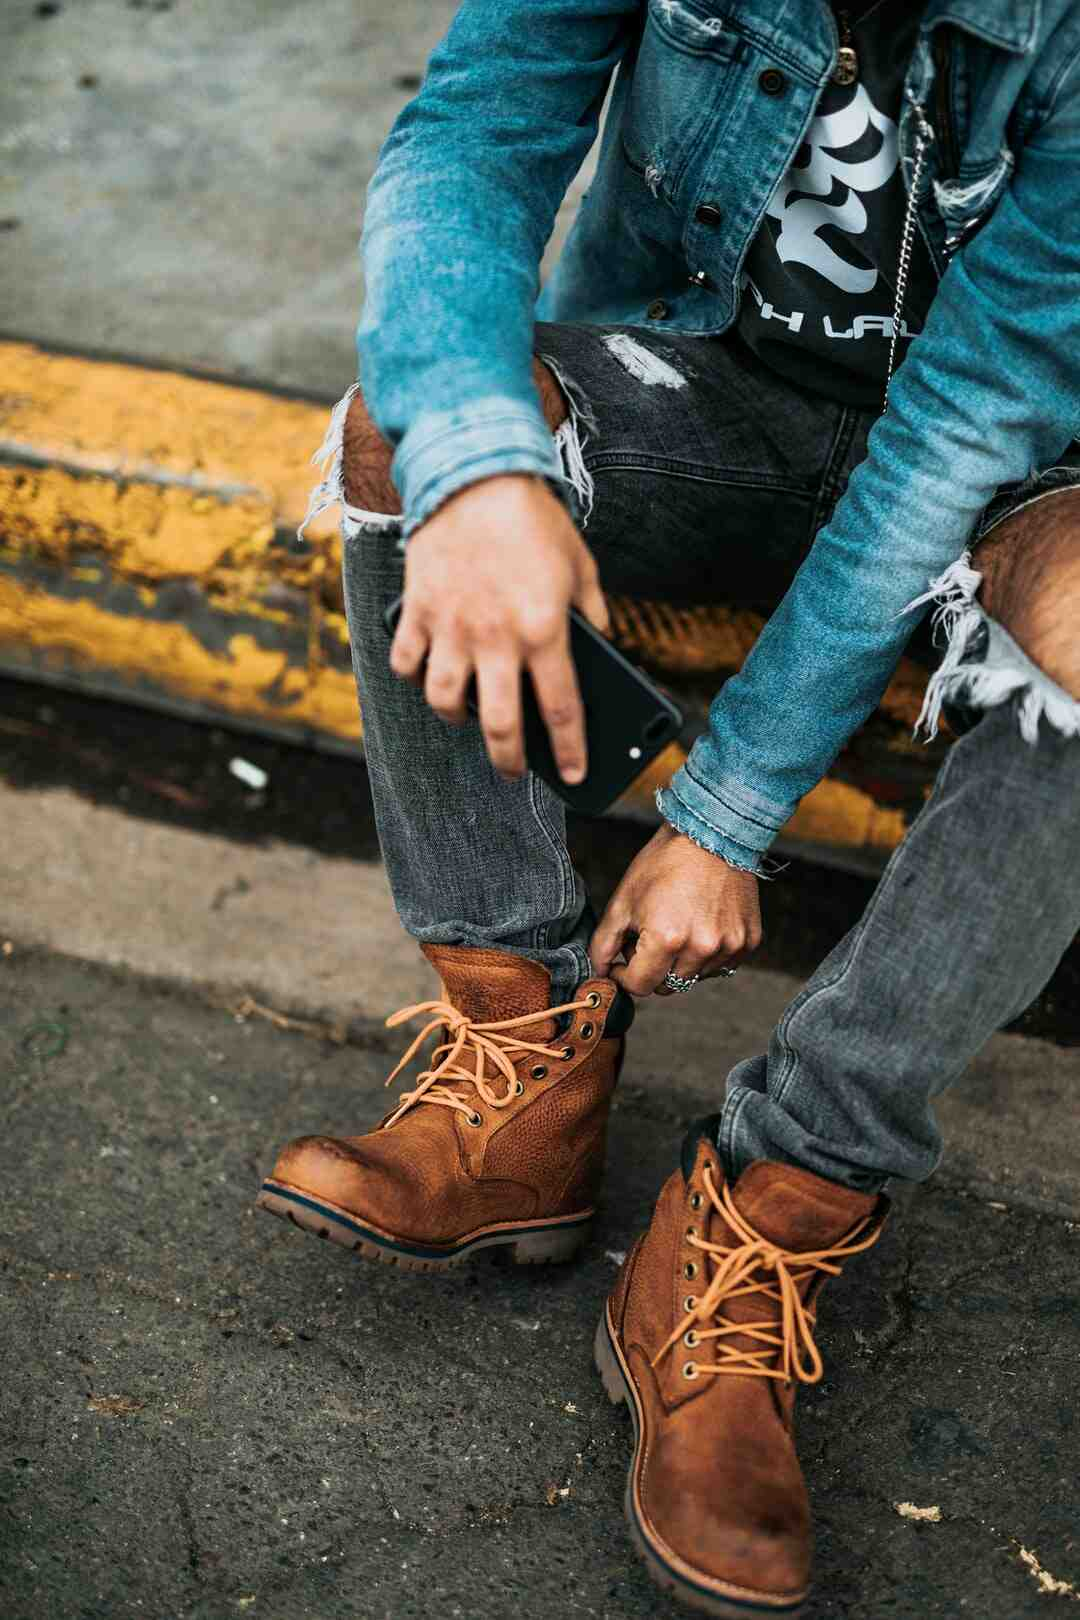 Comment nettoyer des chaussures Timberland